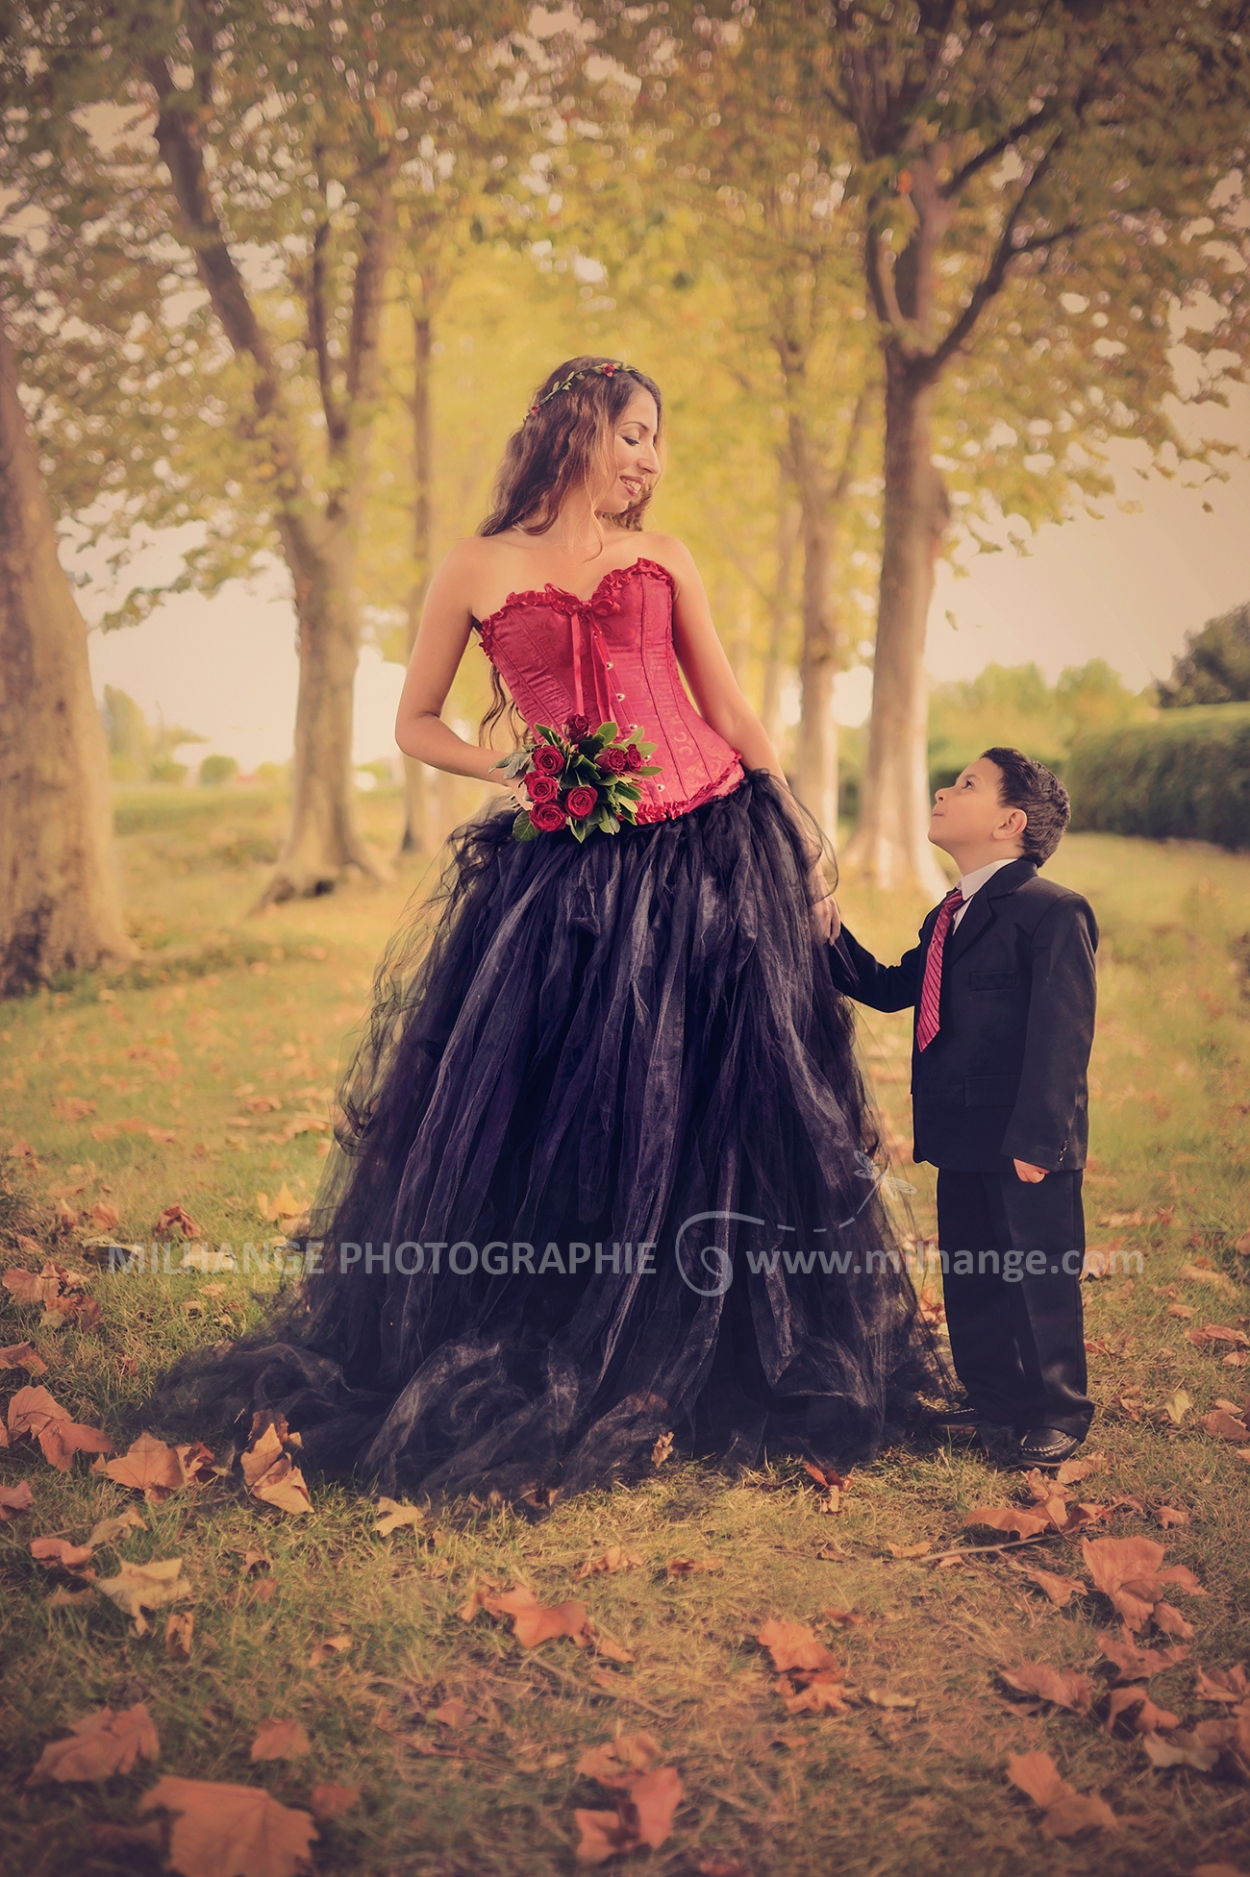 photo-parent-enfant-mere-fils-amour-bordeaux-libourne-gironde-3